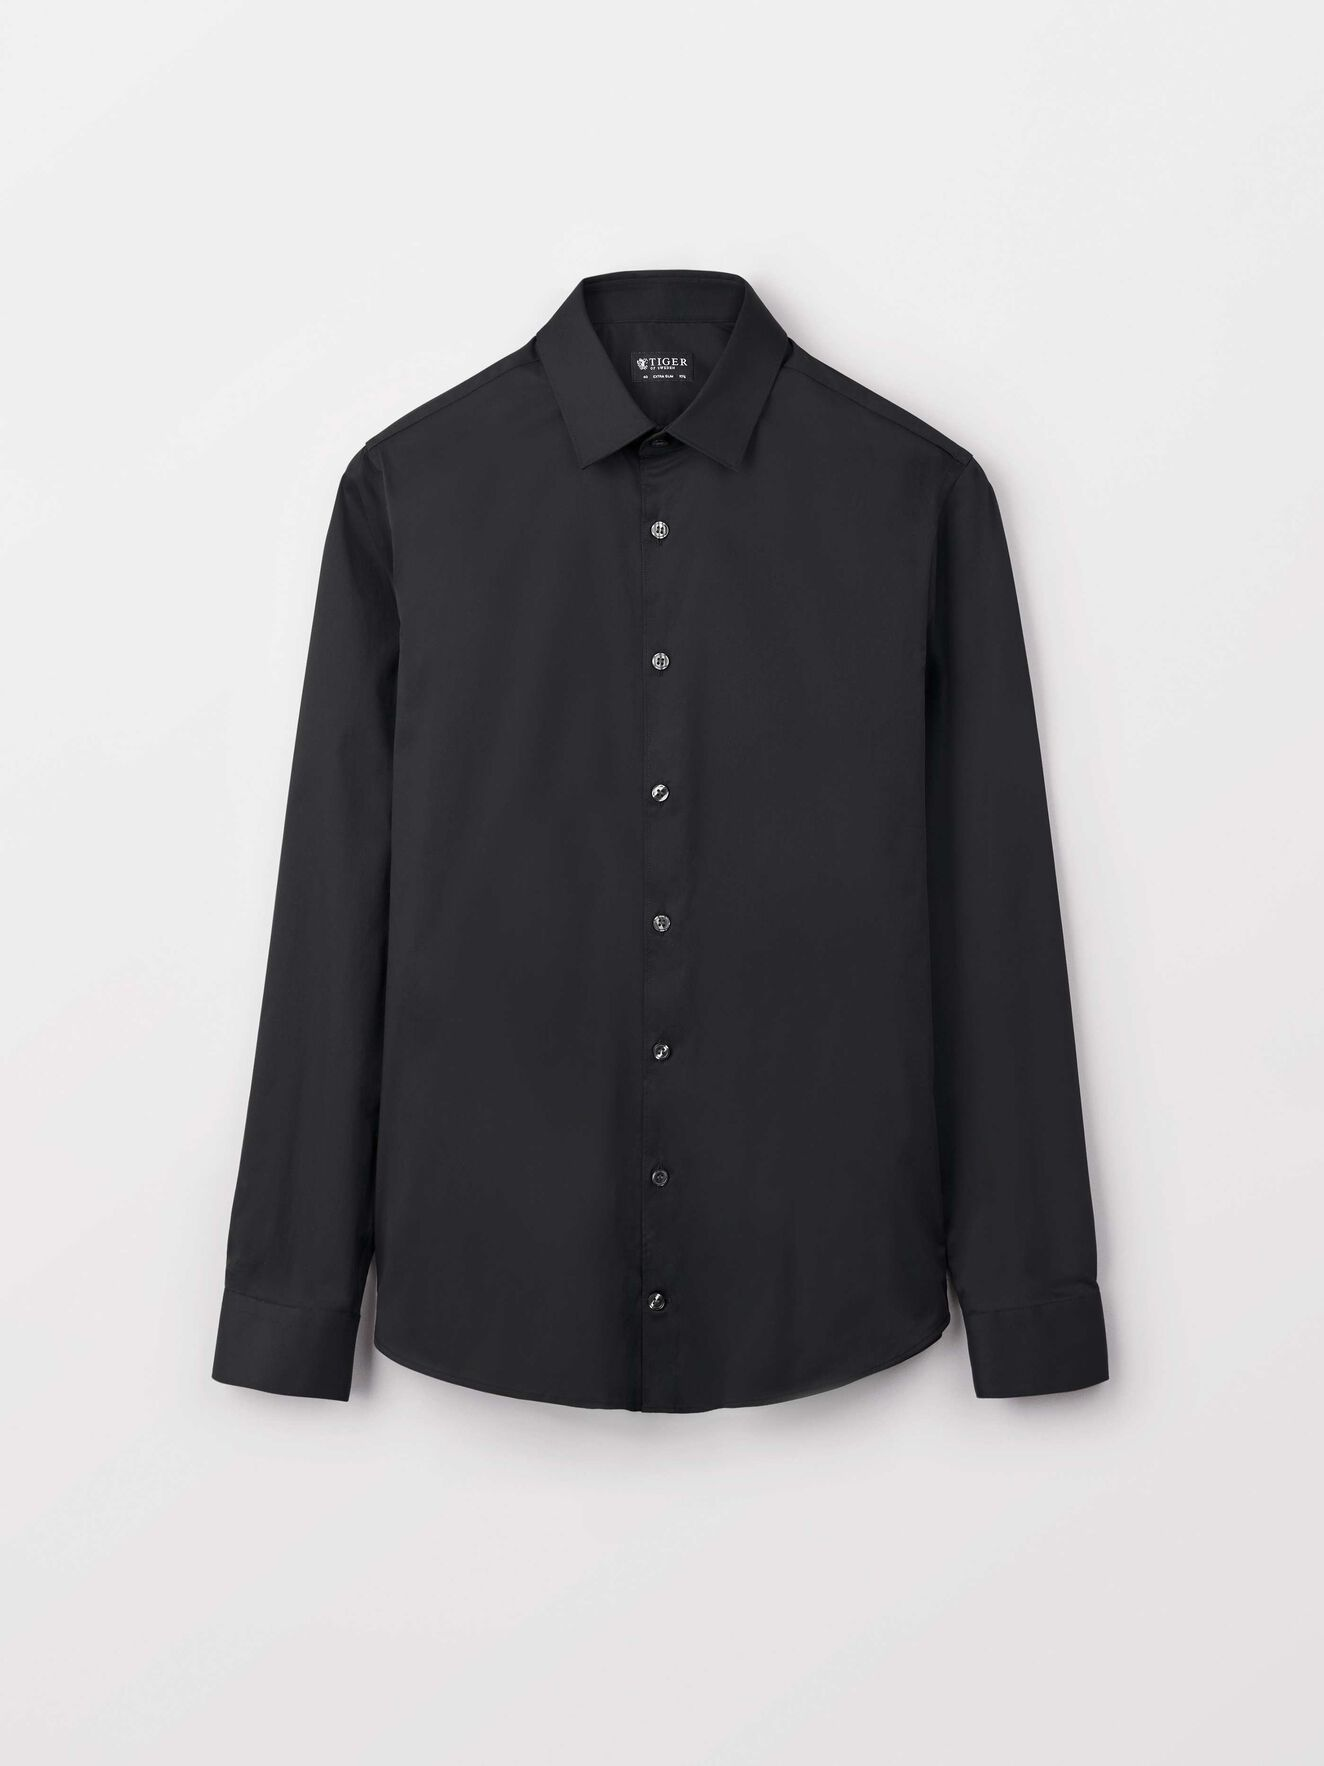 Filbrodie Shirt in Black from Tiger of Sweden